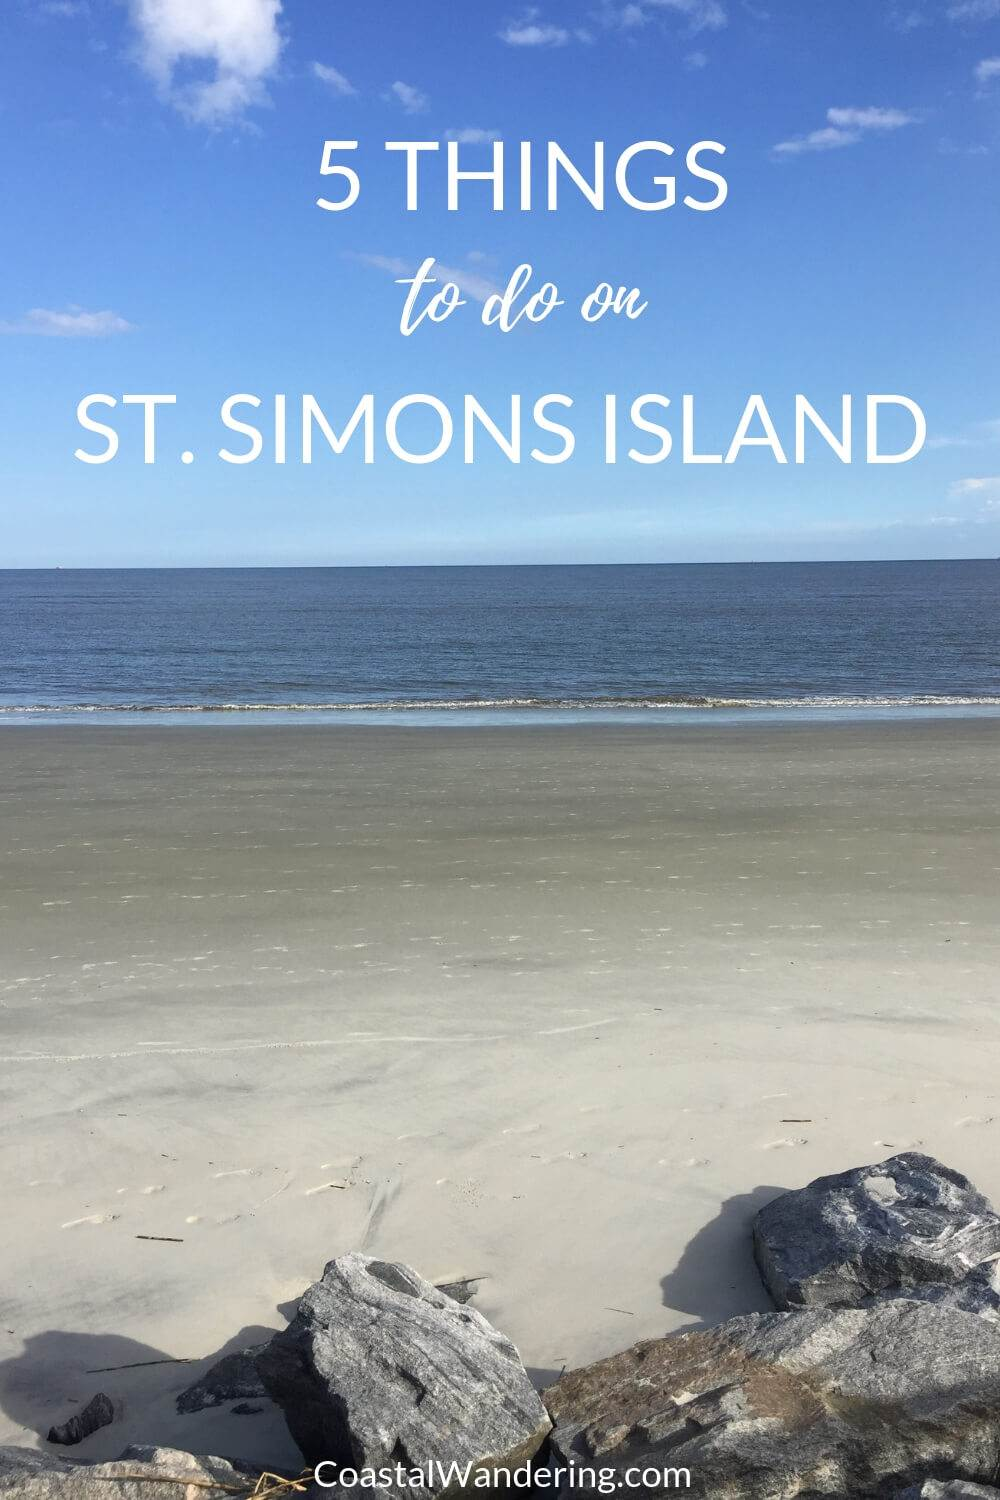 5 things to do on St. Simons Island, Georgia Golden Isles - Coastal Wandering